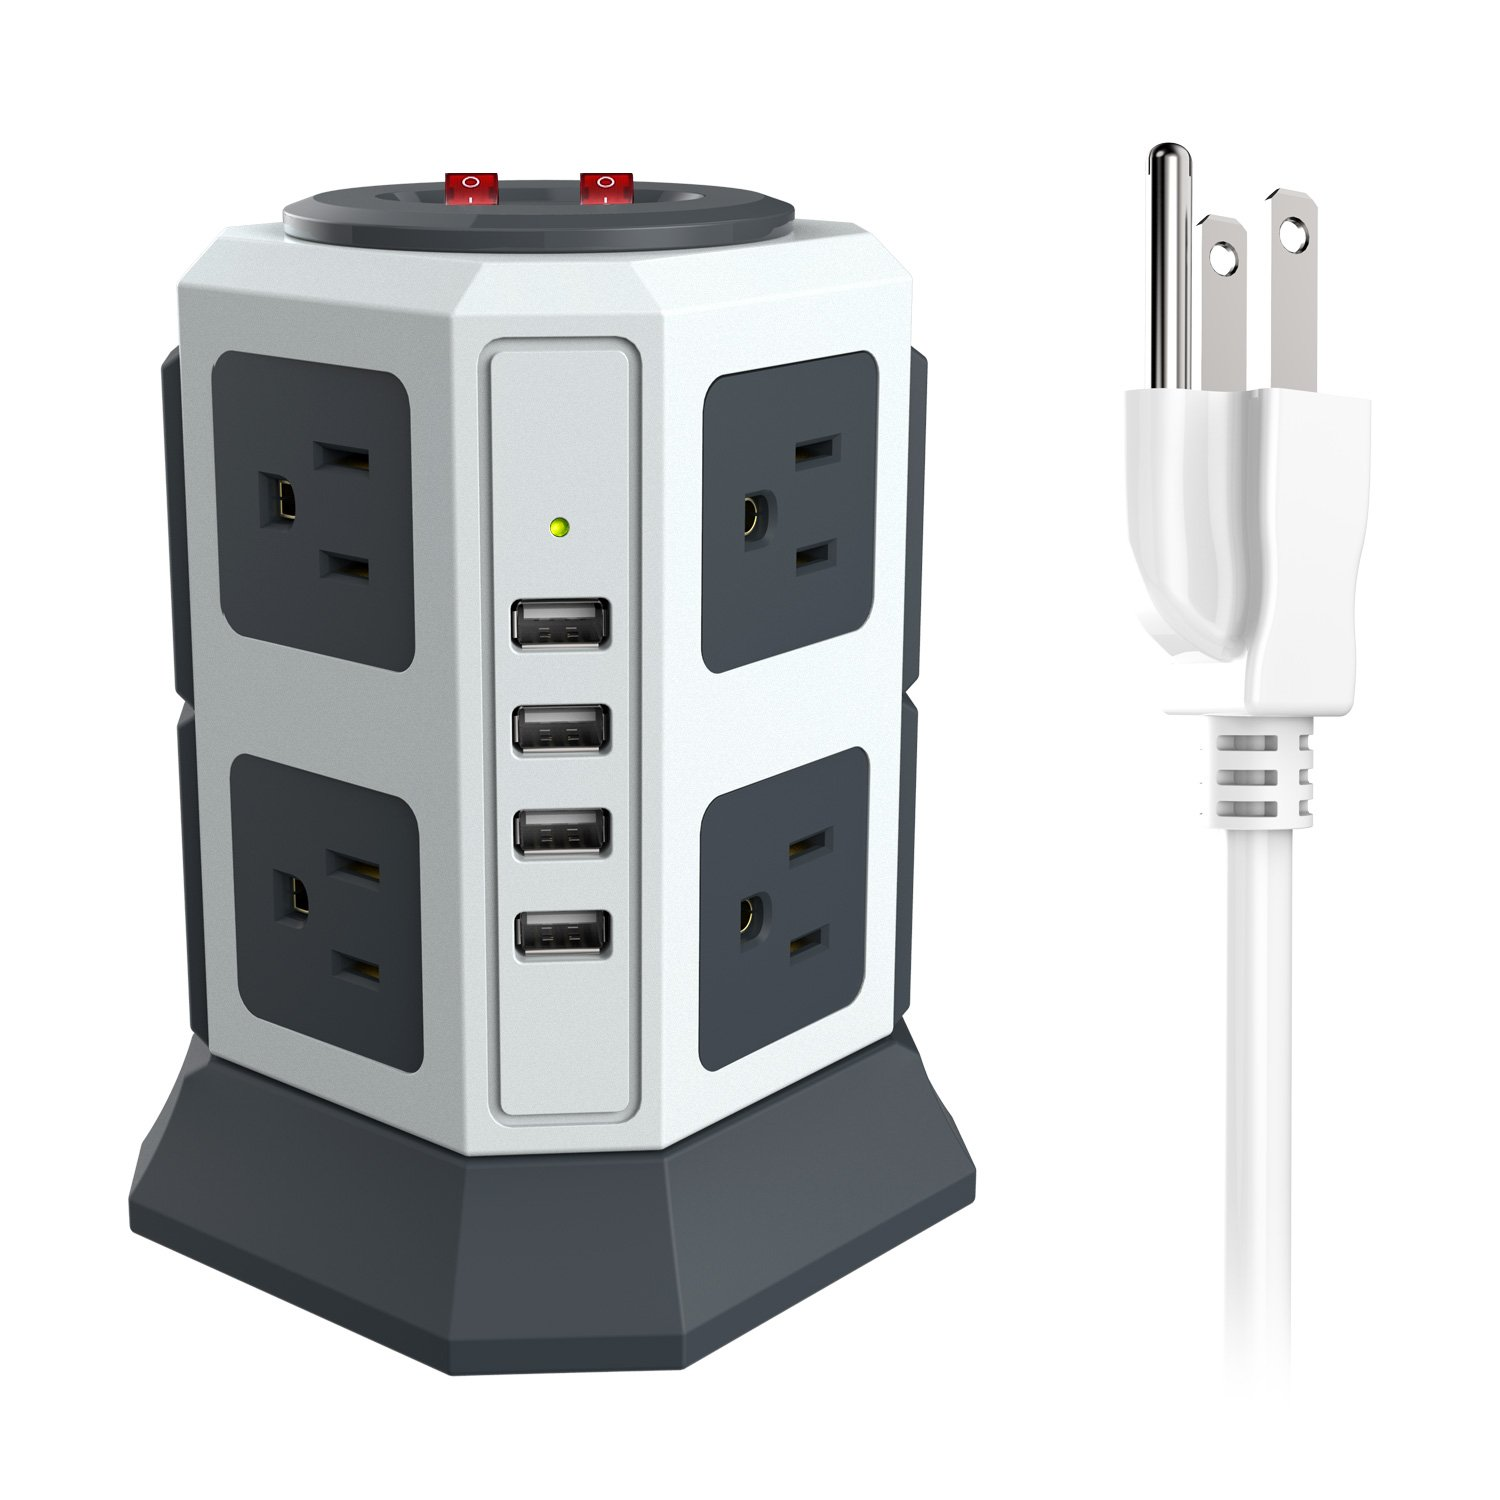 Vertical Power Strip With 4 Usb Ports 8 Outlets Up To A Bar By Cutting The Plug Off Of Powerbar No Idea As I Tower Surge Protector 6ft 14awg Long Cord 5v 24a Home Improvement